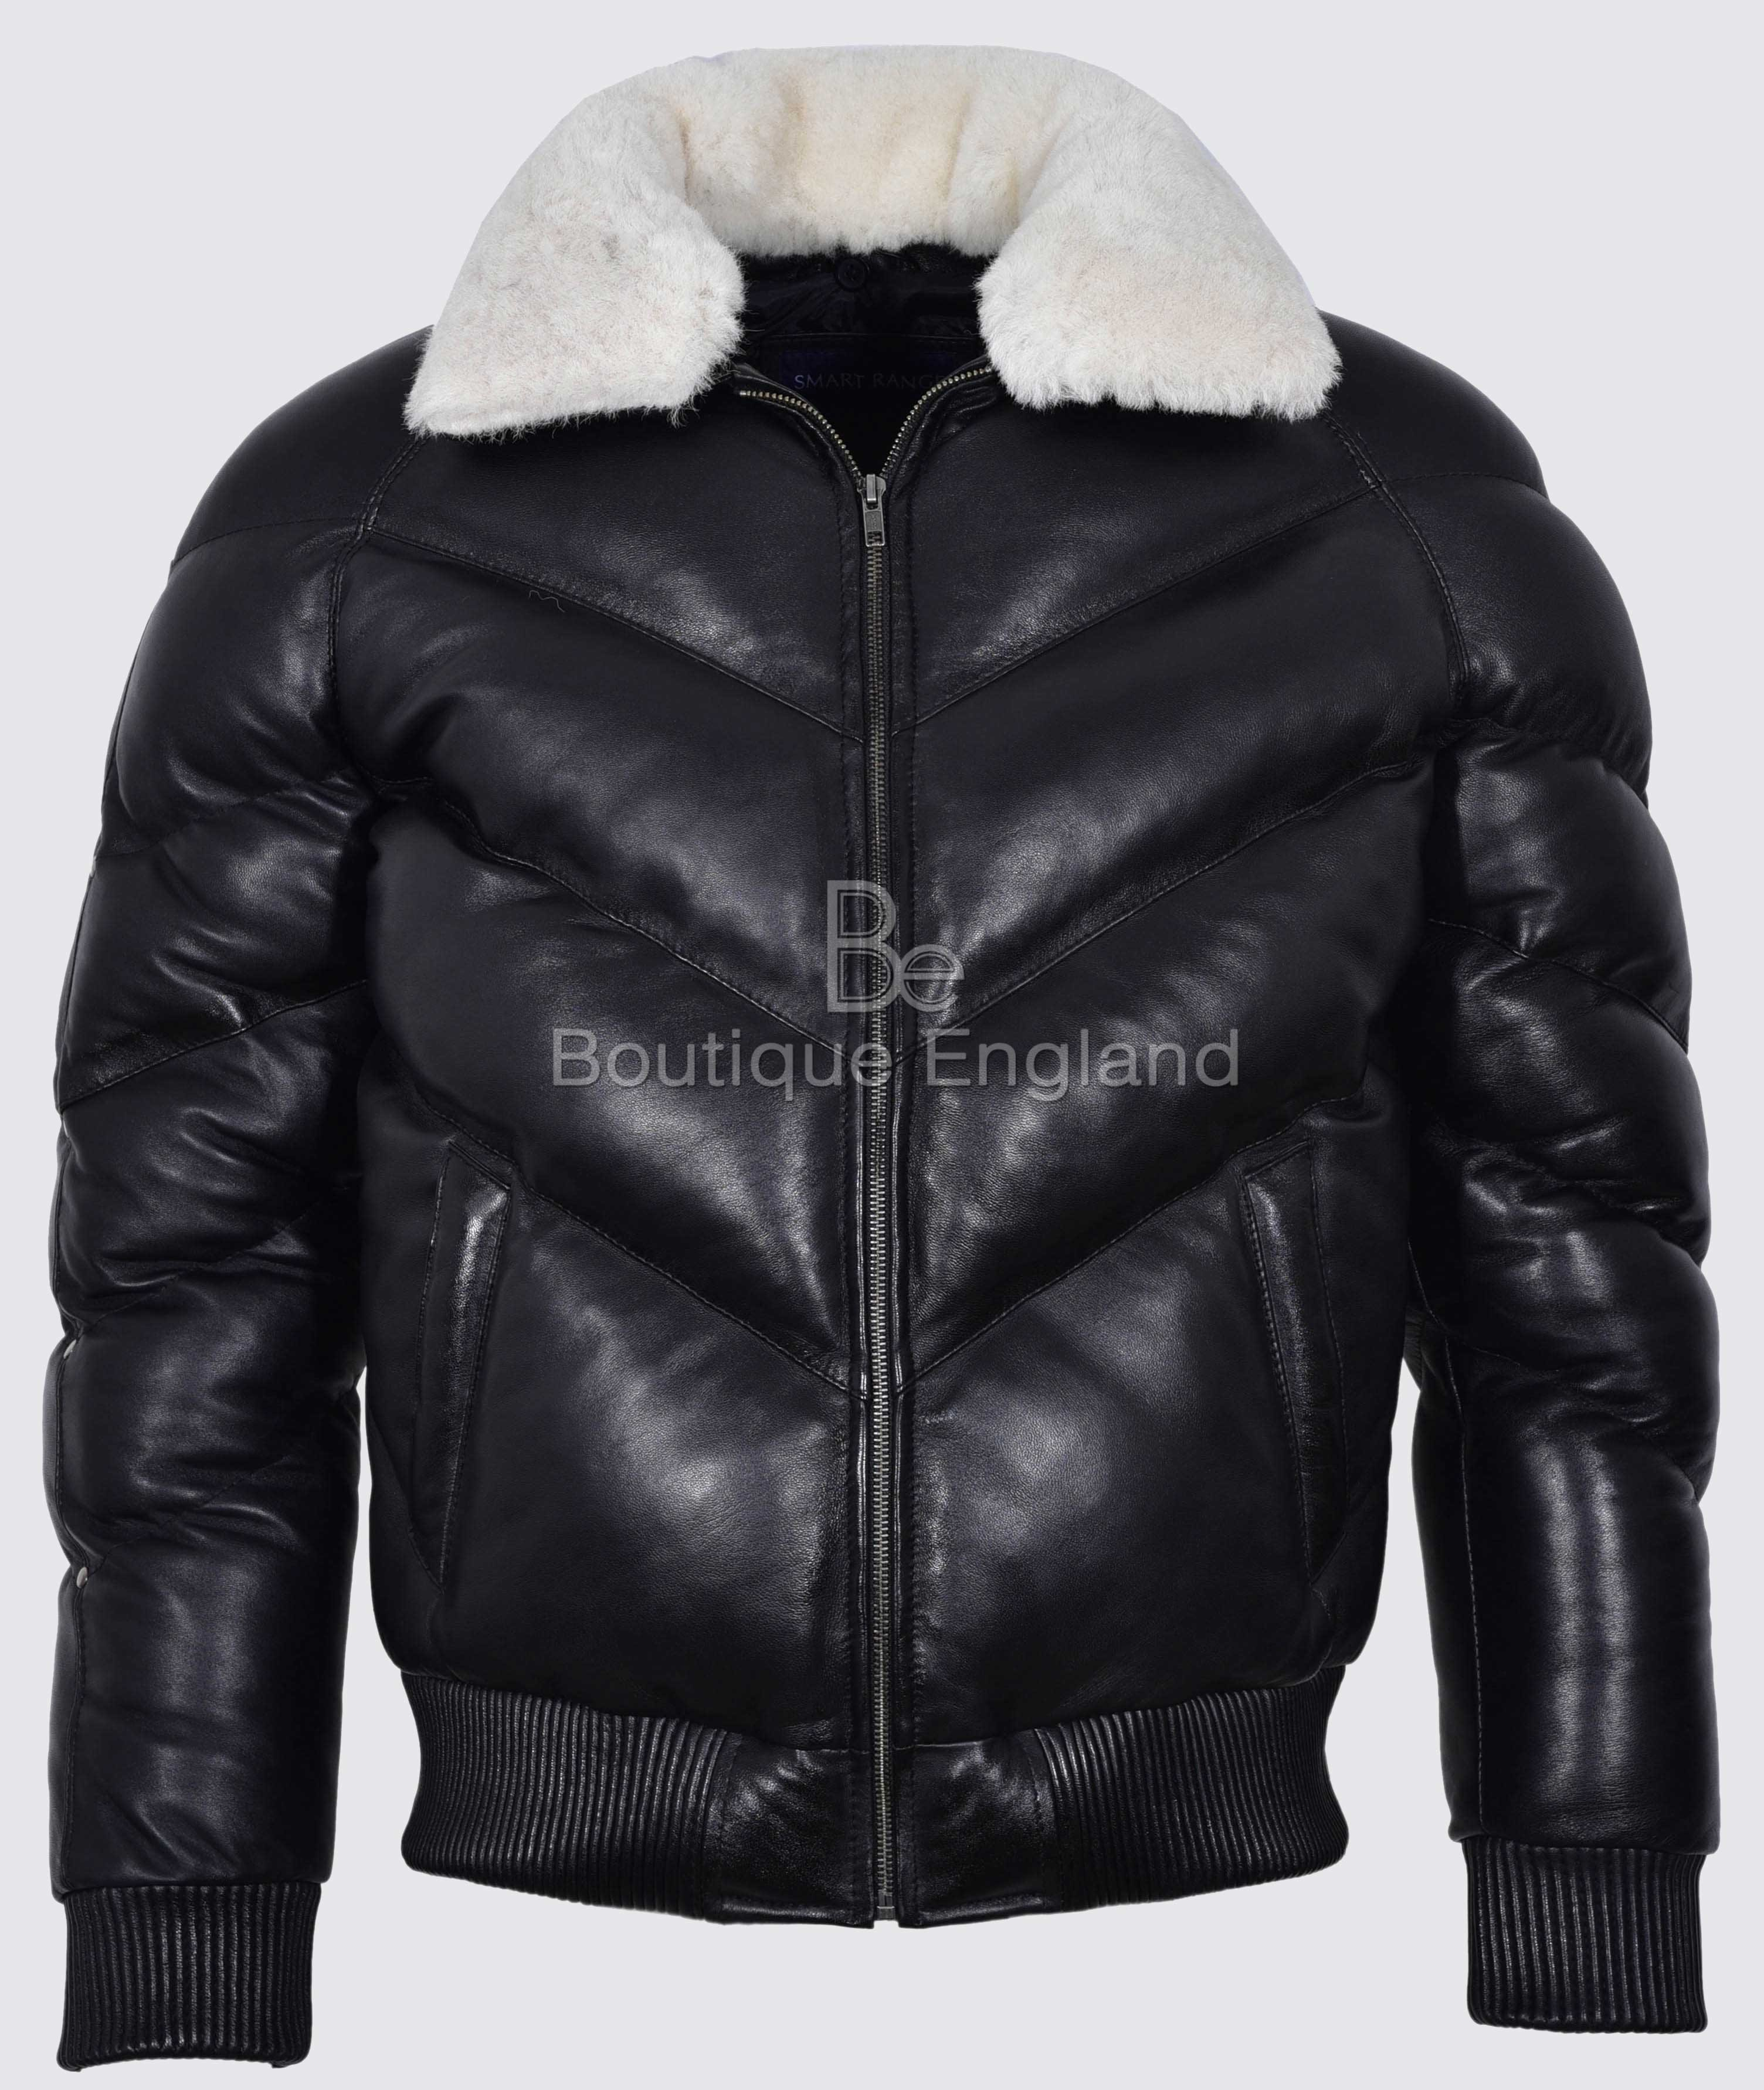 ACE Men's Puffer Black Real Leather Jacket White Shearling Collar Winter Warm